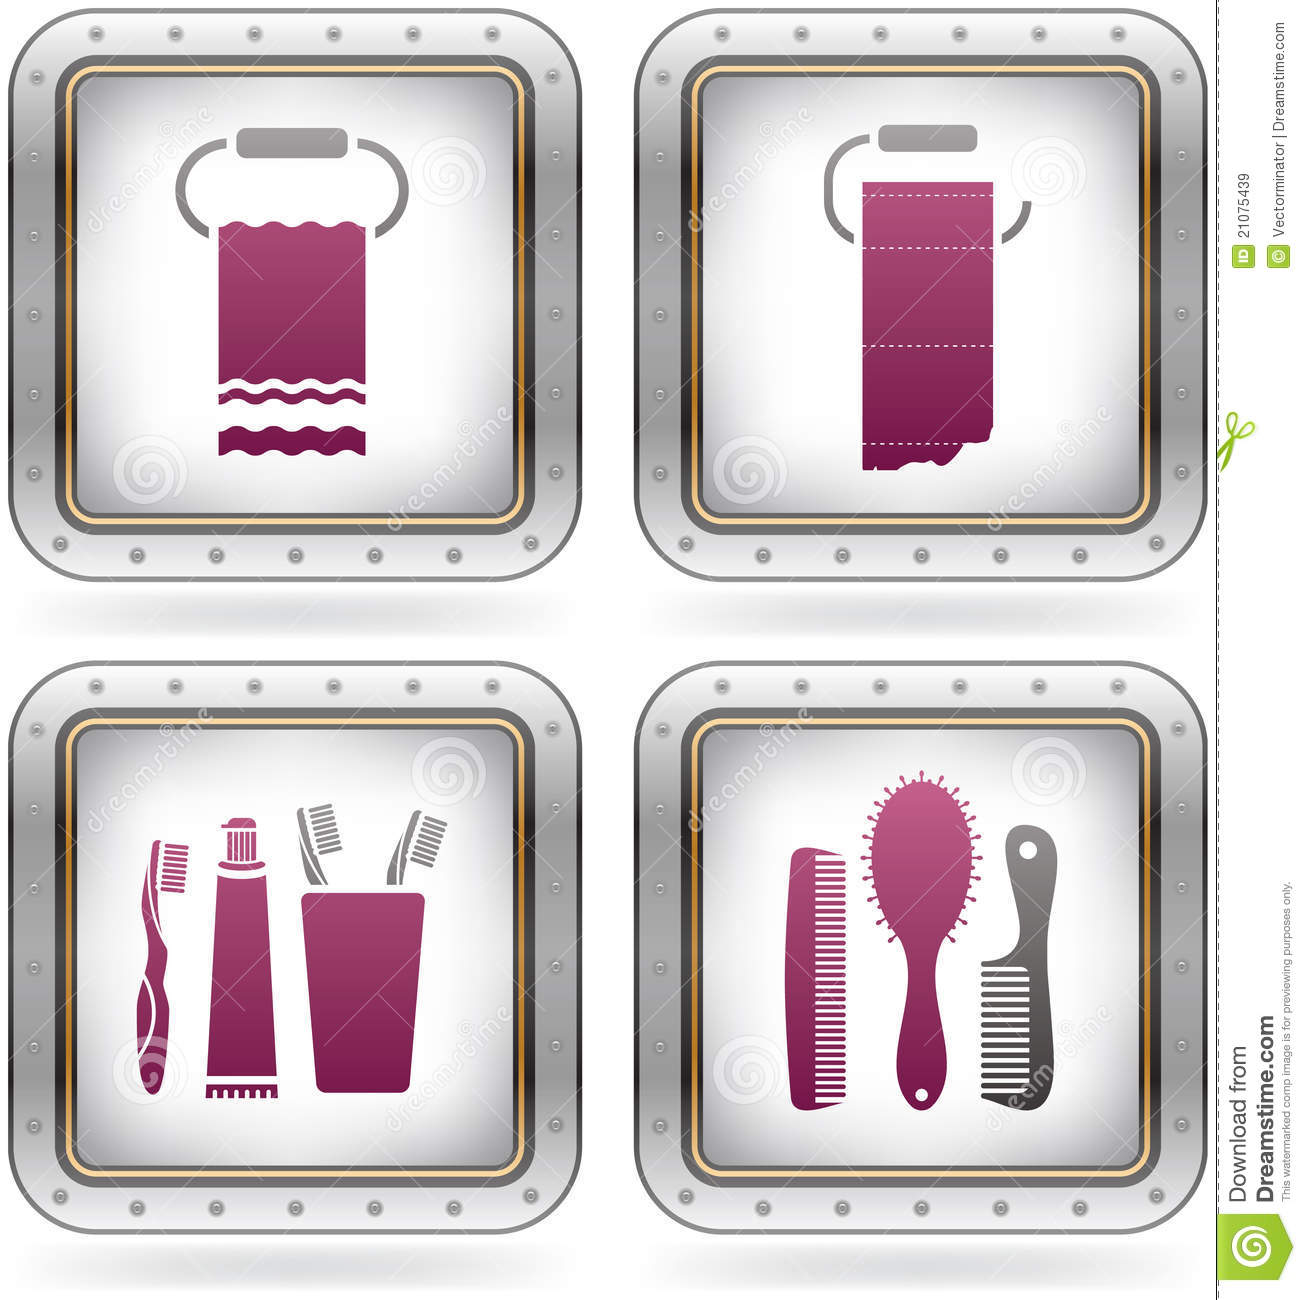 Bath utensils royalty free stock images image 21075439 for Bathroom utensils